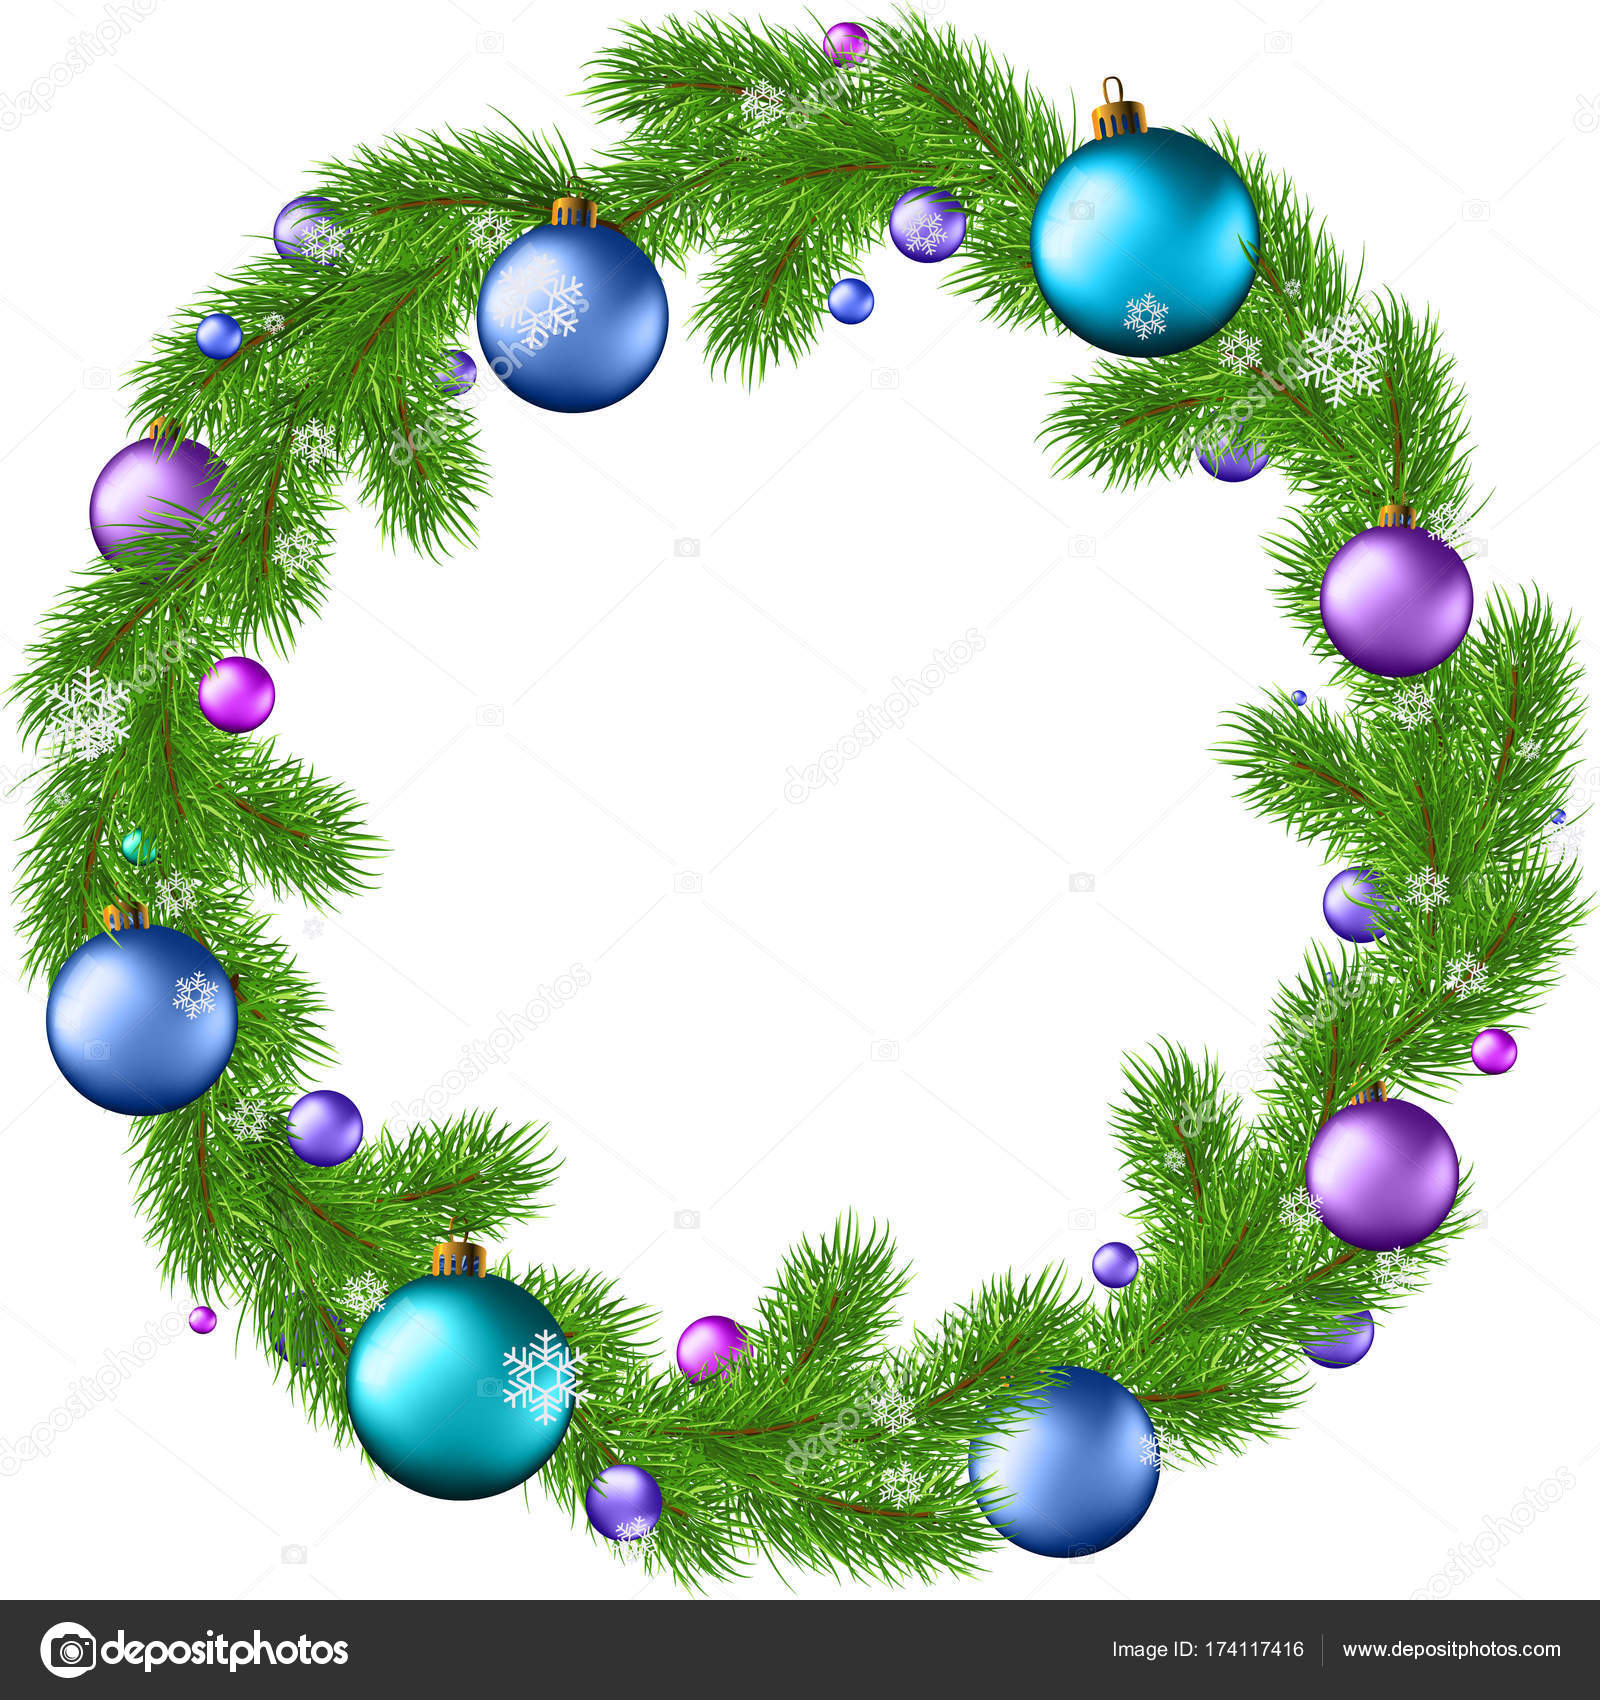 Holiday wreaths clip art.